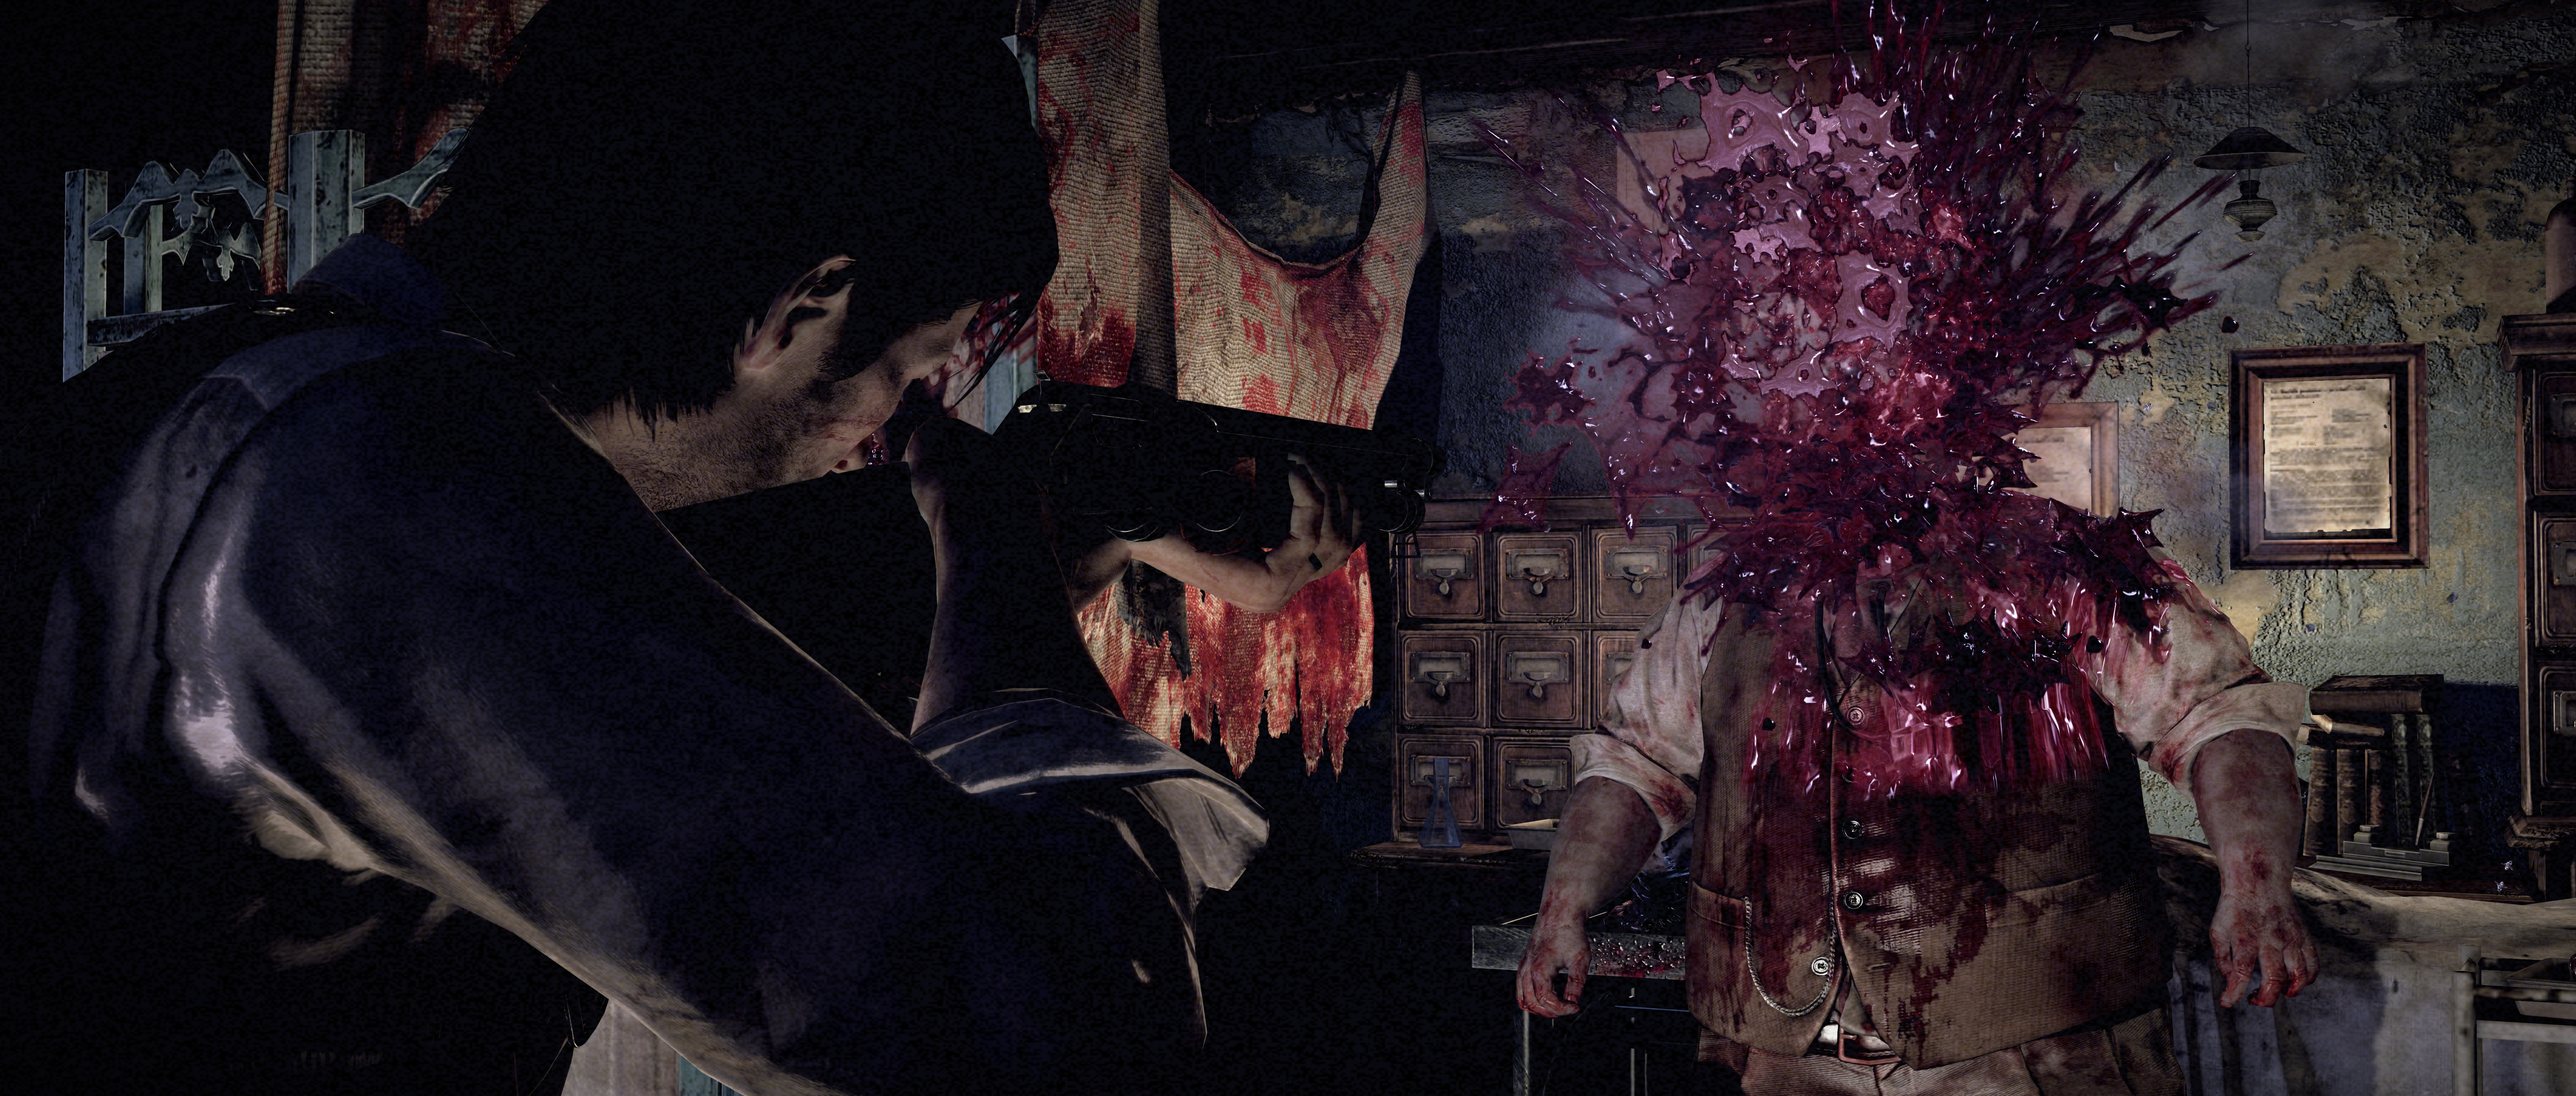 Wallpaper The Evil Within 2 4k Games 12718: The Evil Within 5k Retina Ultra HD Wallpaper